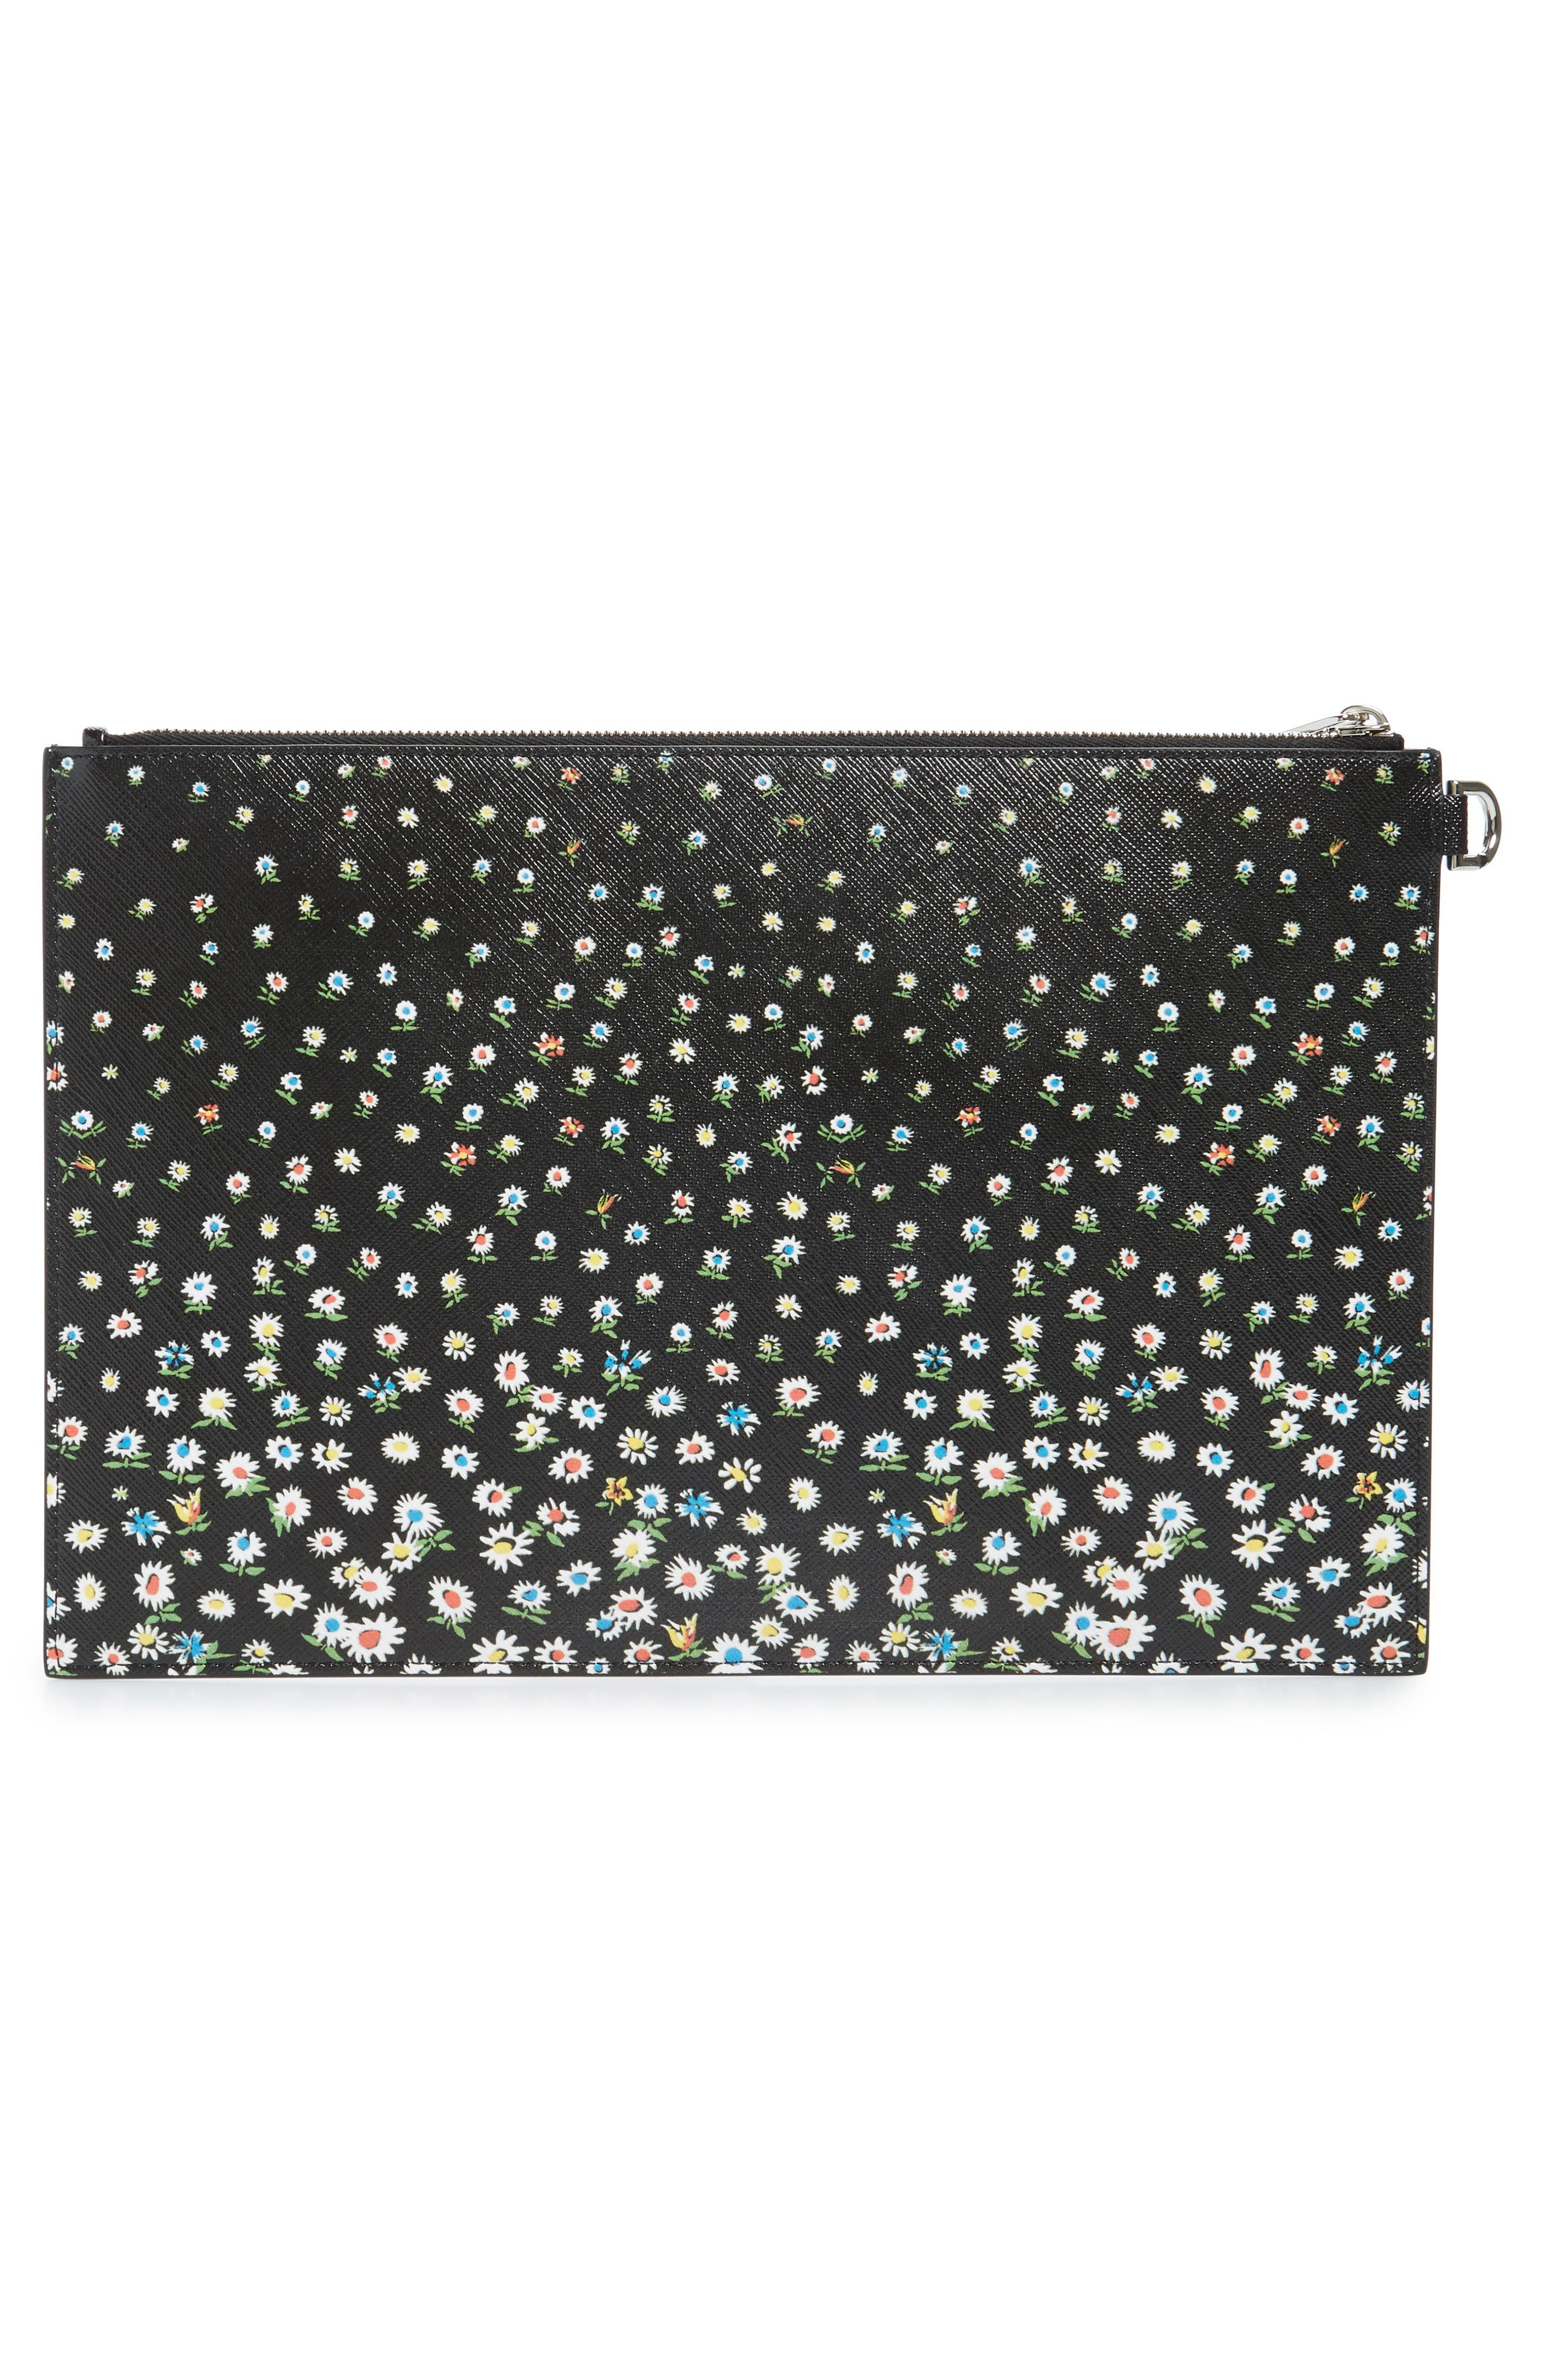 GIVENCHY, Medium Iconic Coated Canvas Pouch, Alternate thumbnail 3, color, BLACK